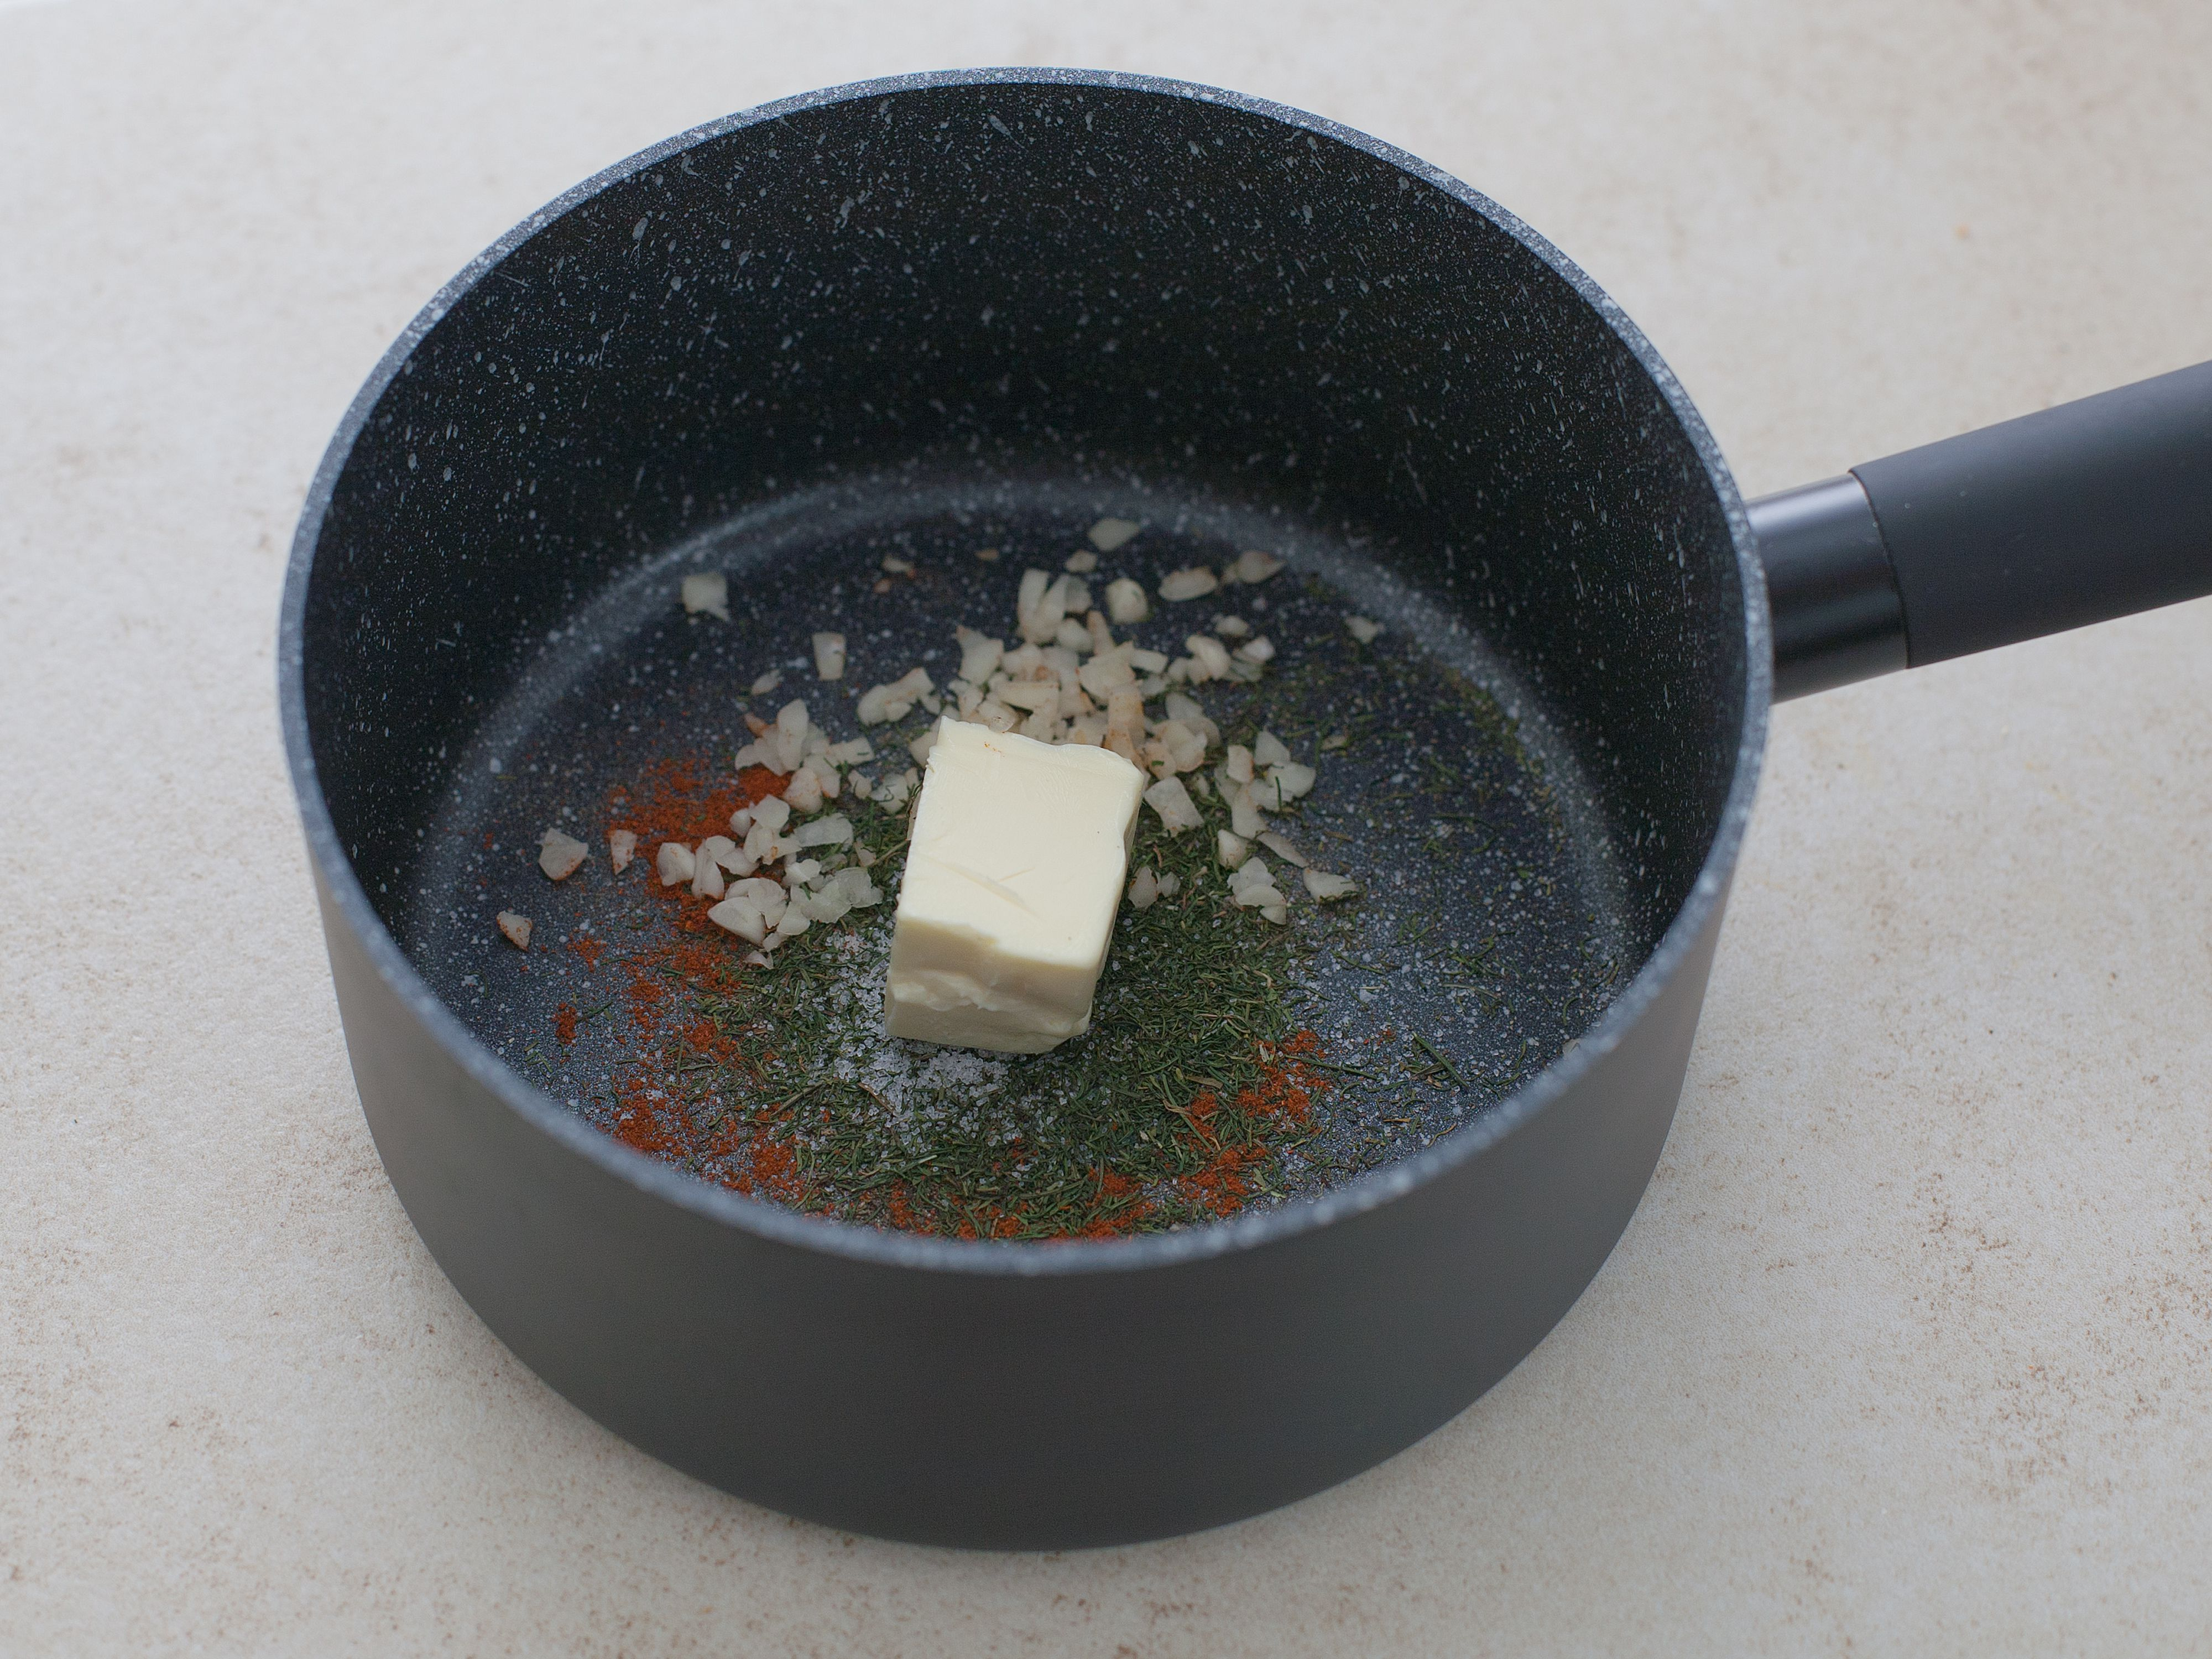 Melting butter and spices in a pot